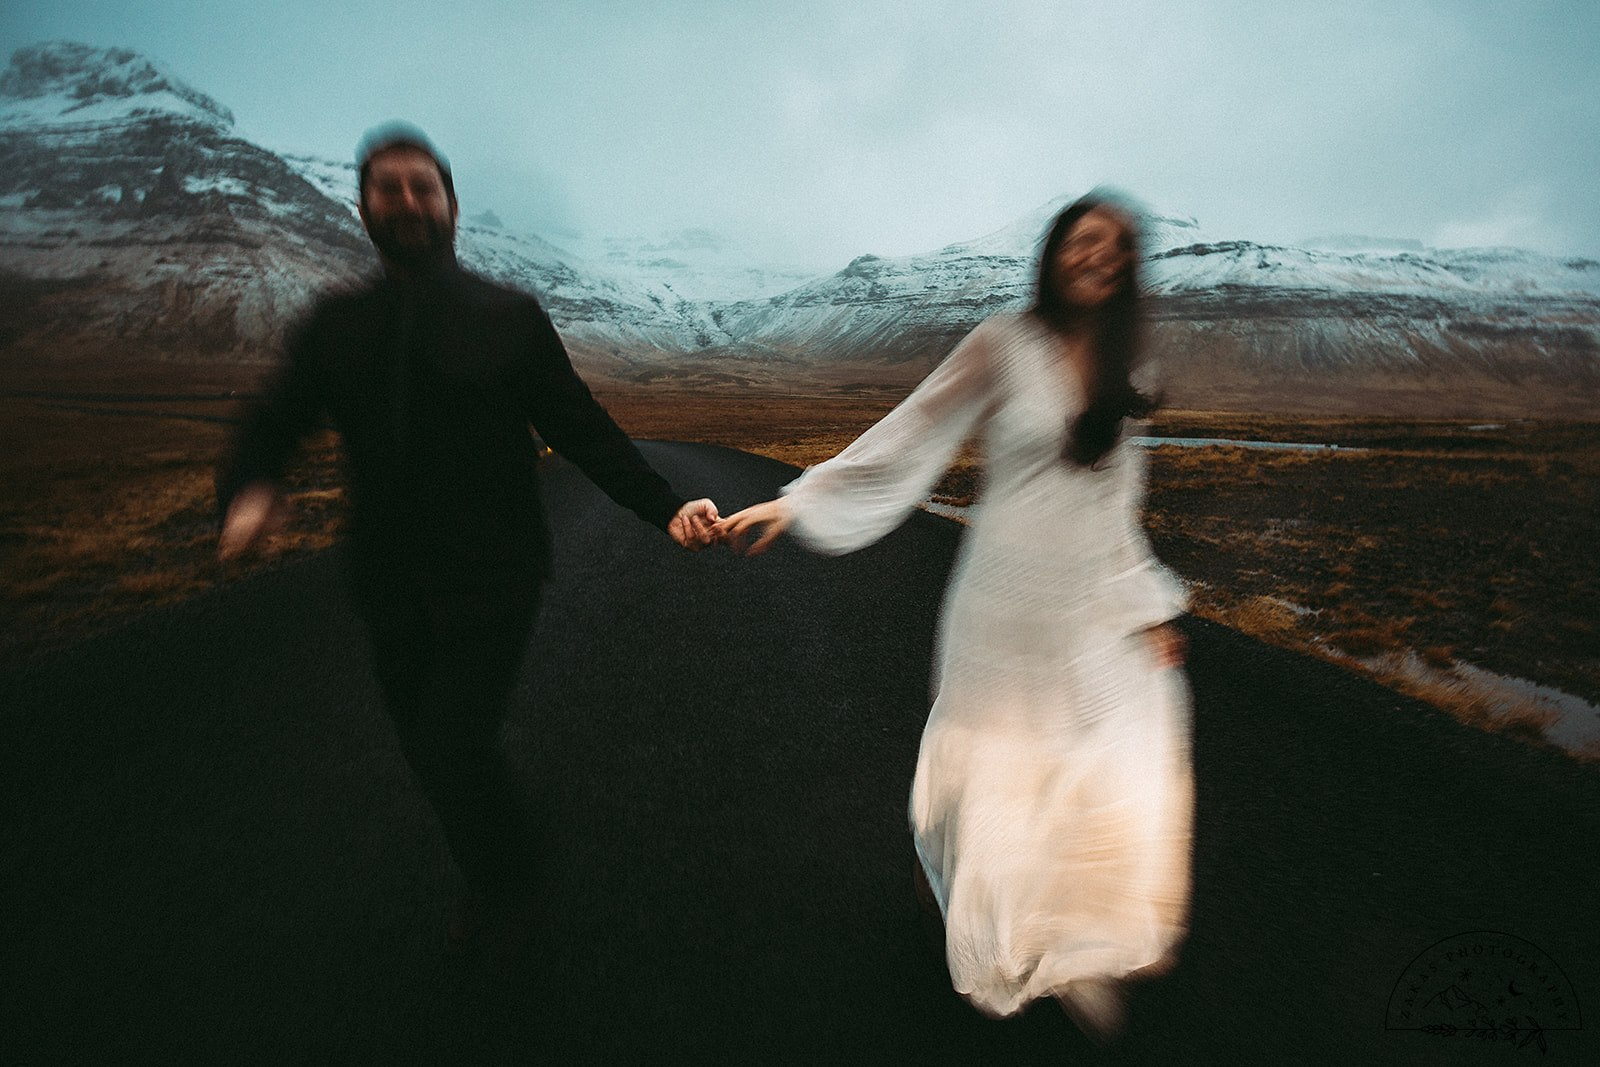 Husband and wife running down highway celebrating their honeymoon in Iceland.